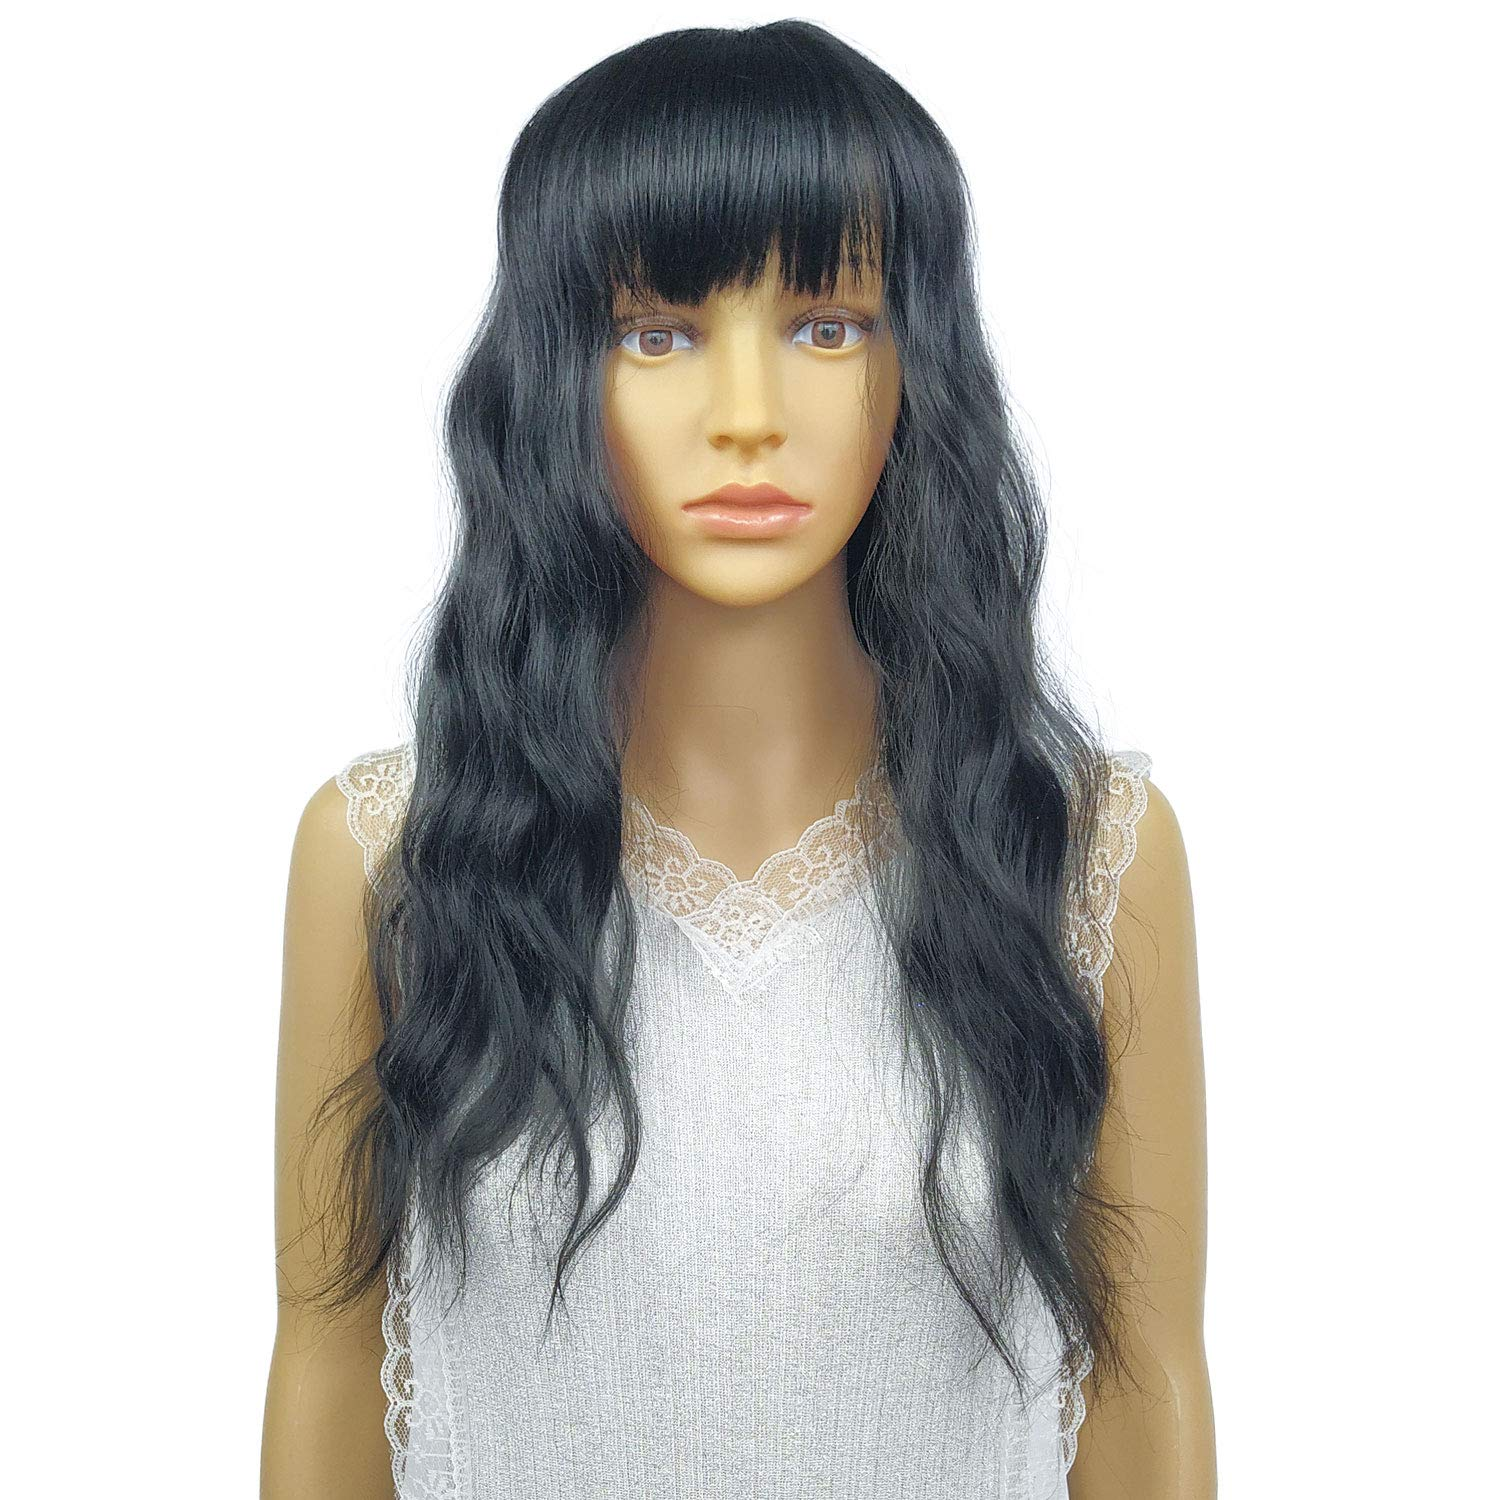 TANRAIN A woman with a wig with long curls and large waves Synthetic wigs Heat-resistant man-made fibre Party costume party All code A variety of colors are available (Dark Black)